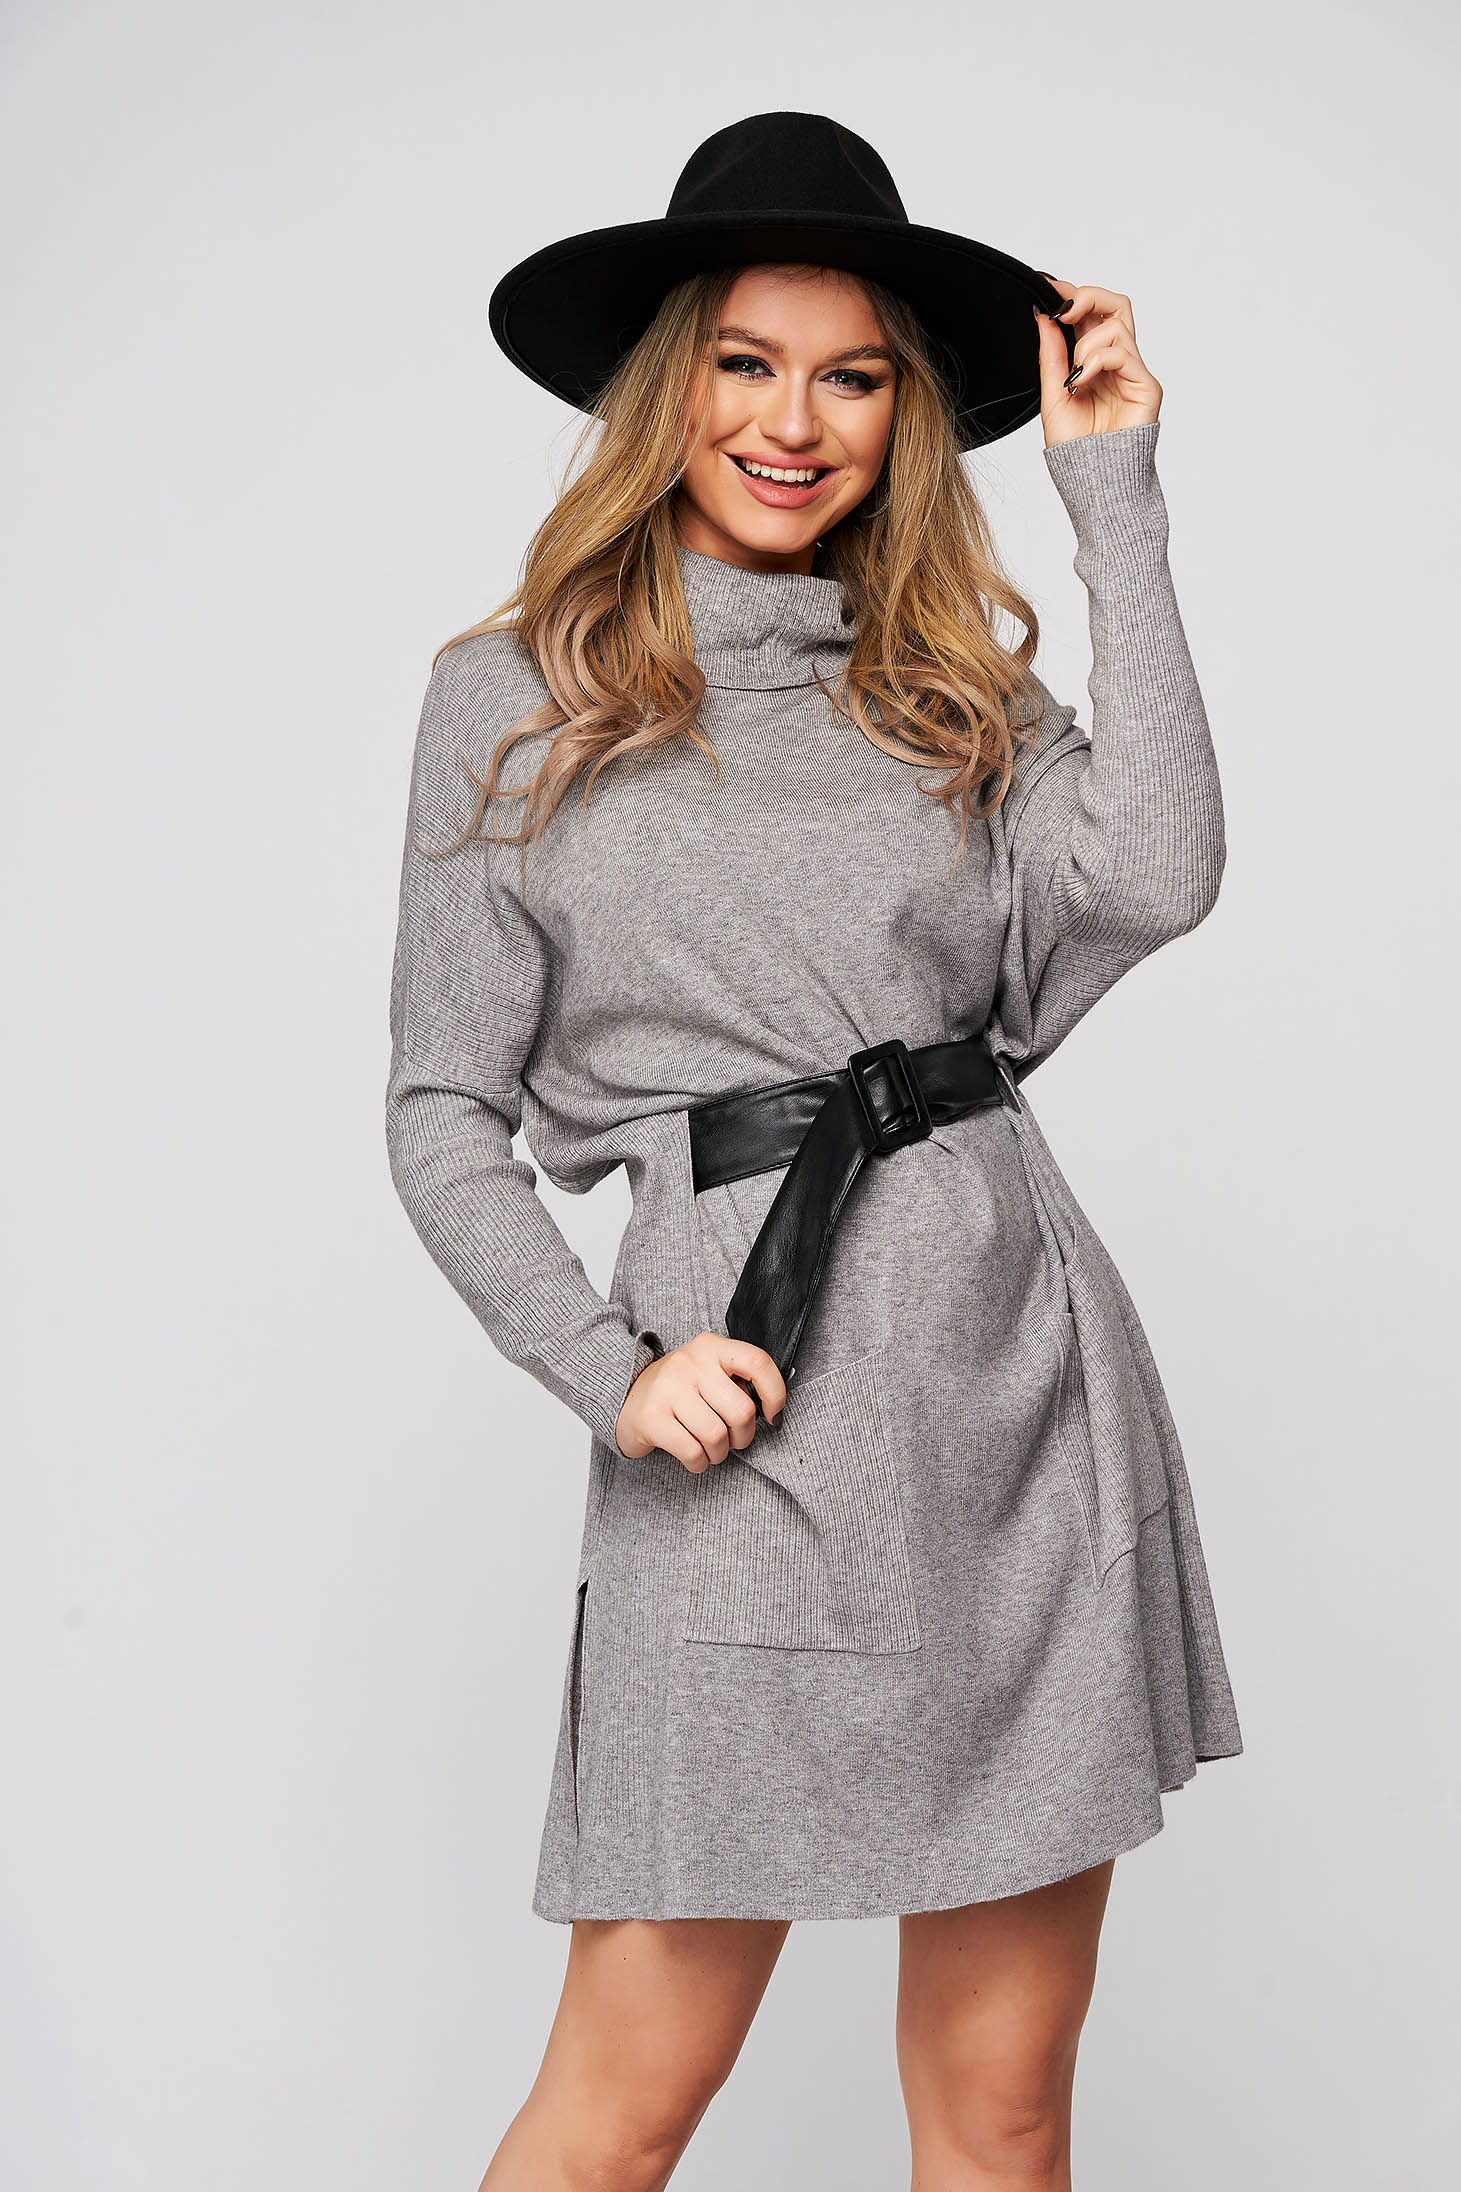 Grey dress flared with pockets accessorized with belt from elastic fabric